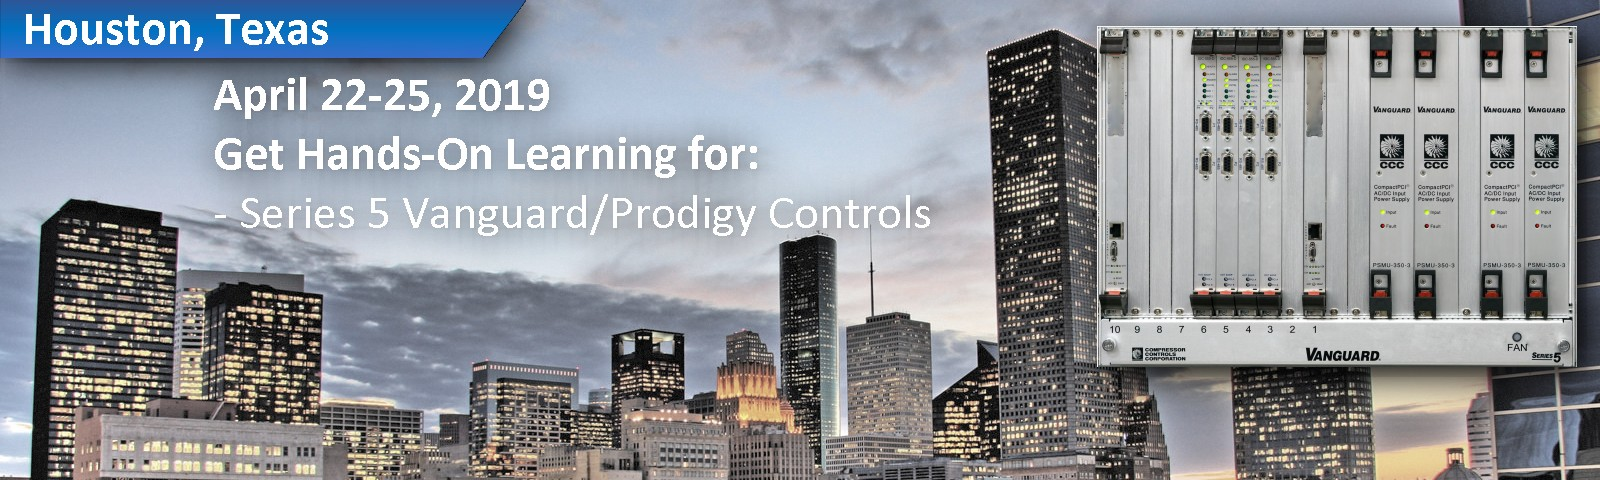 2019 Houston S5 Regional Training | <a  data-cke-saved-href='https://learning.cccglobal.com/ProductDetails.aspx?ProductID=267' href='https://learning.cccglobal.com/ProductDetails.aspx?ProductID=267'>Register Now</a>